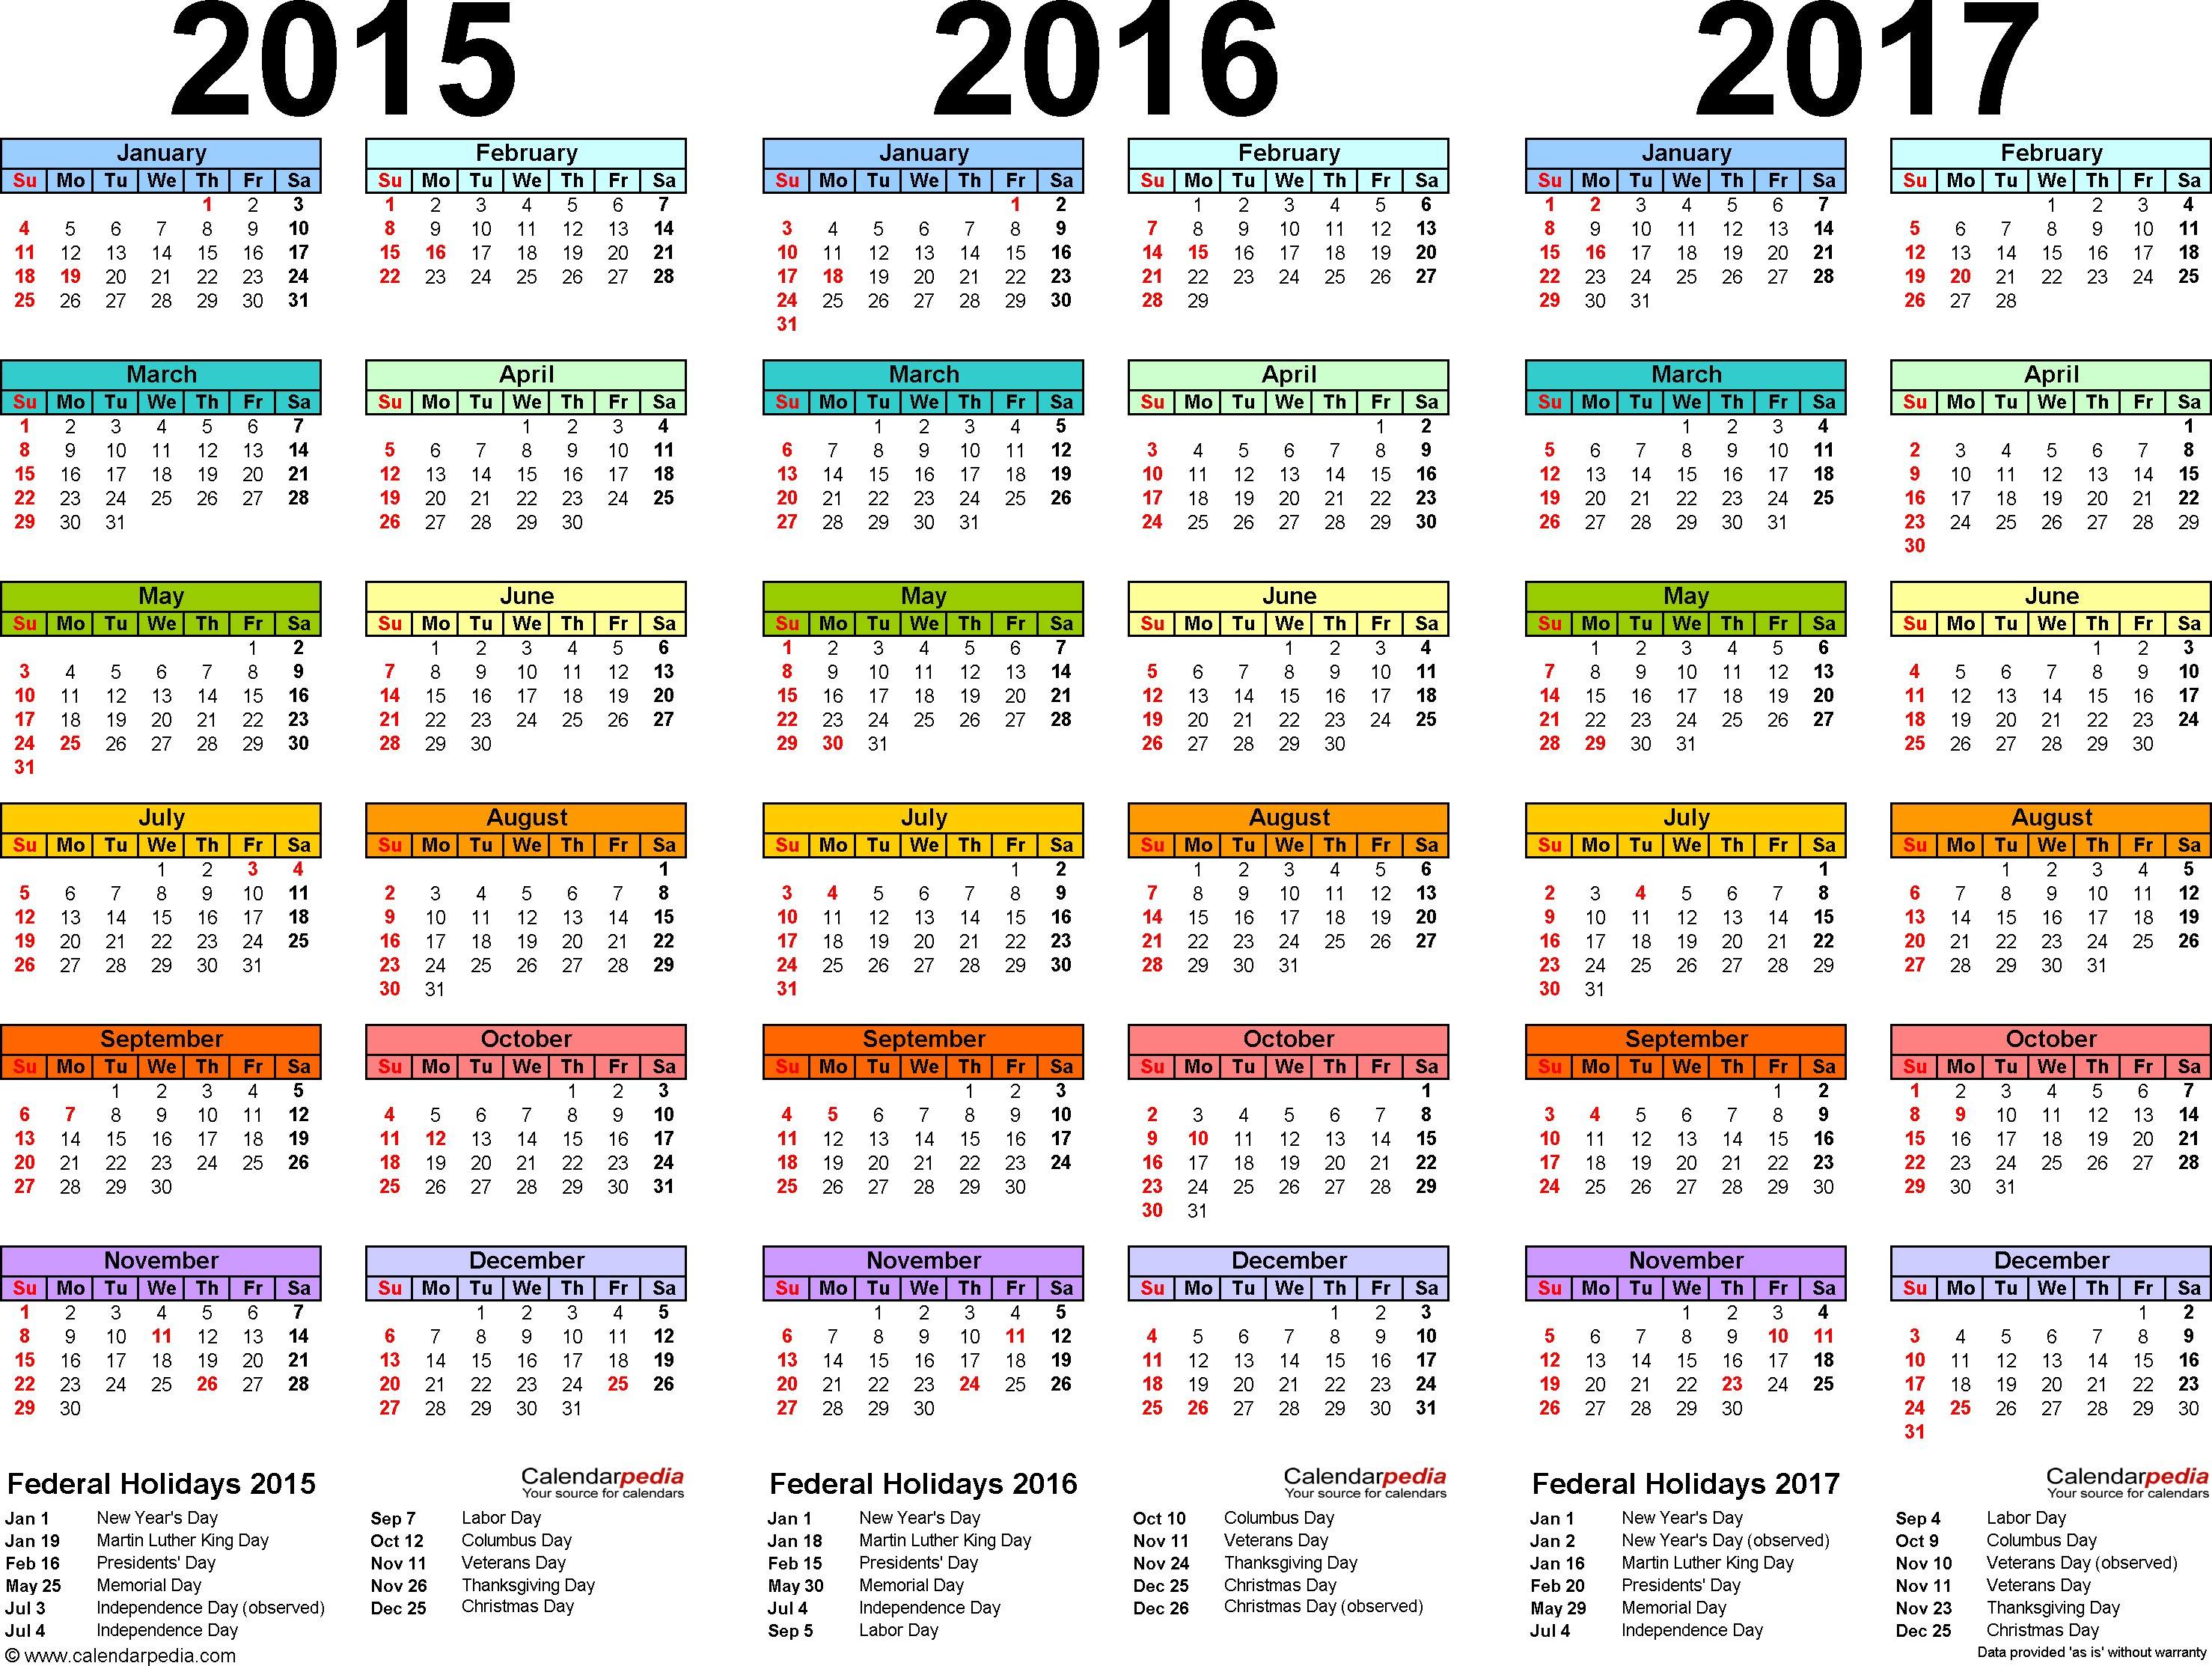 March 2019 Calendar Uk Printable Mejores Y Más Novedosos 2015 2016 2017 Calendar 4 Three Year Printable Pdf Calendars Of March 2019 Calendar Uk Printable Más Actual Sat Test Dates Your Best Test Date 2017 2018 2019 2020